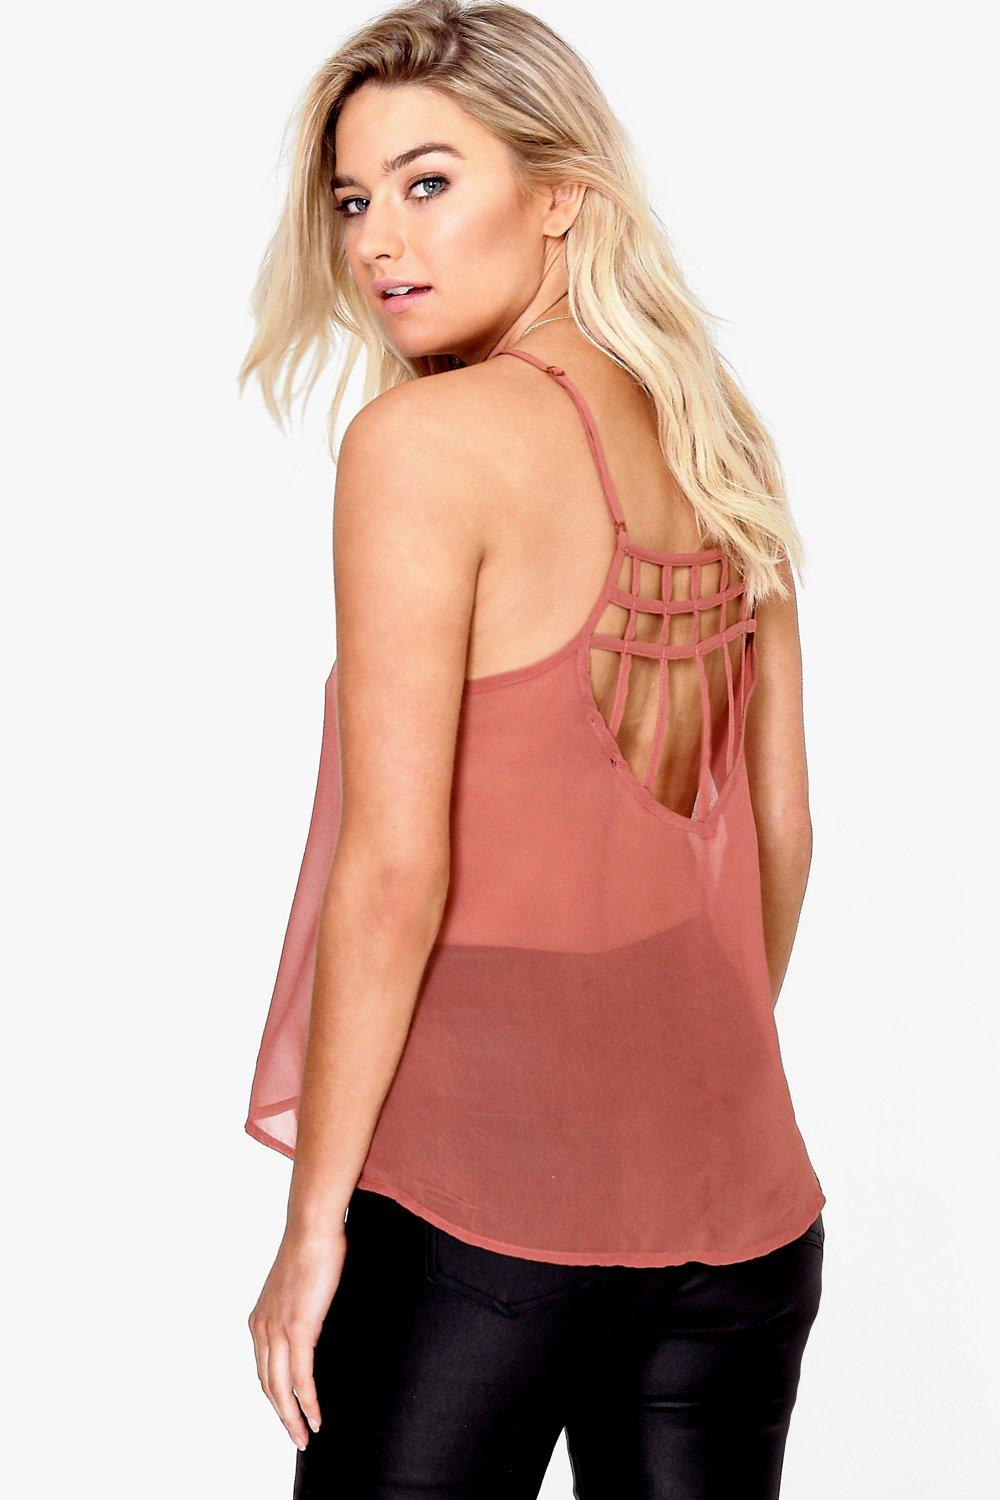 Imogen Caged Back Cami